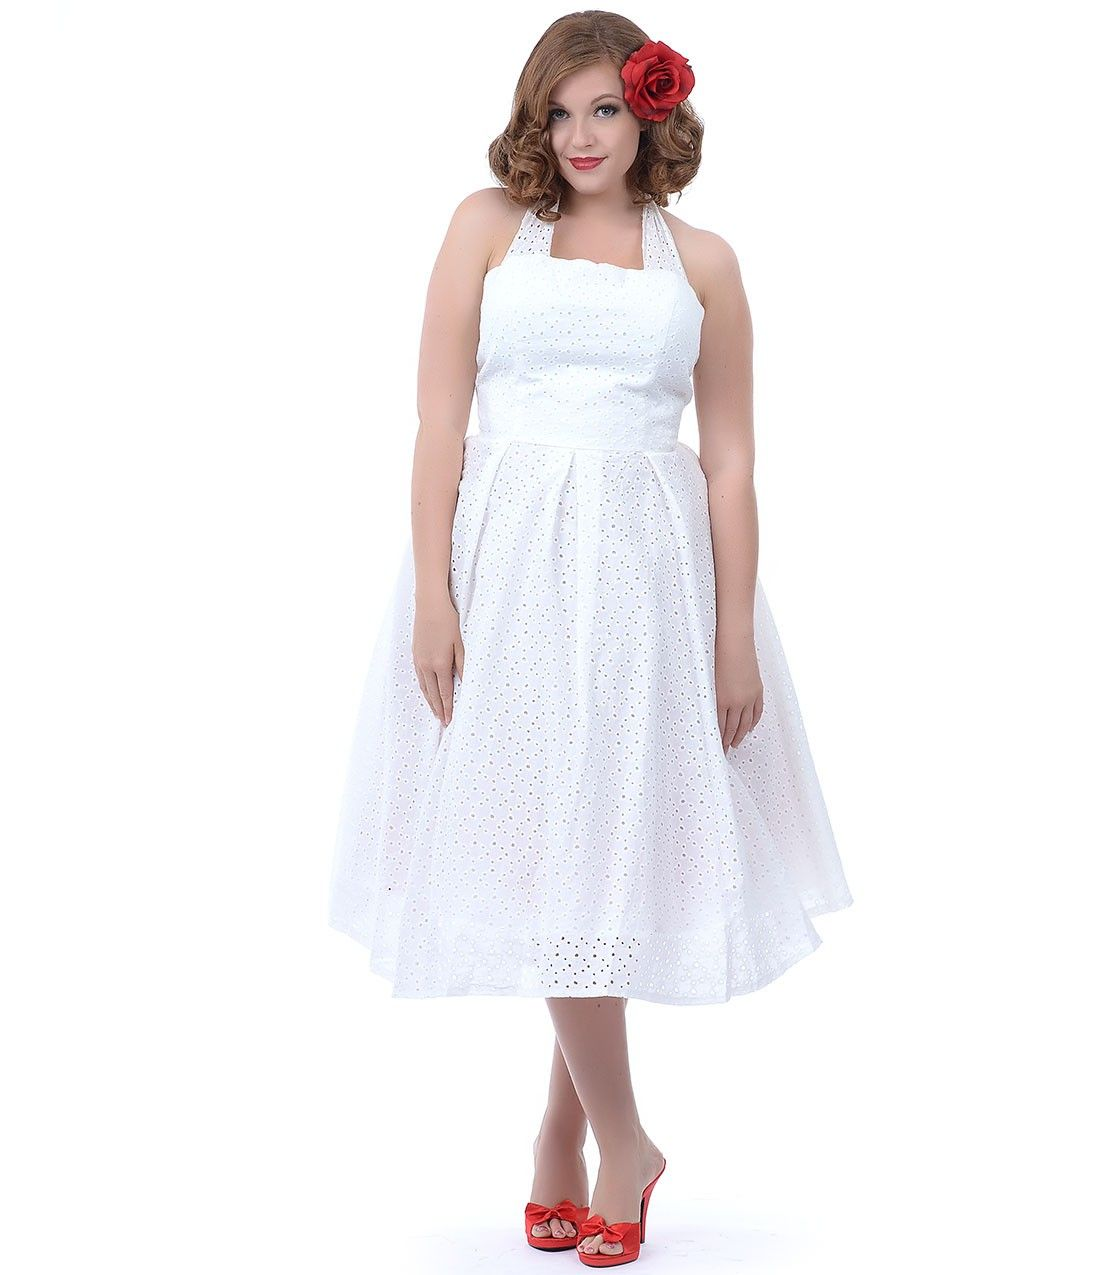 Unique Vintage Plus Size Off White Cotton Eyelet Flirty Halter Swing Dress